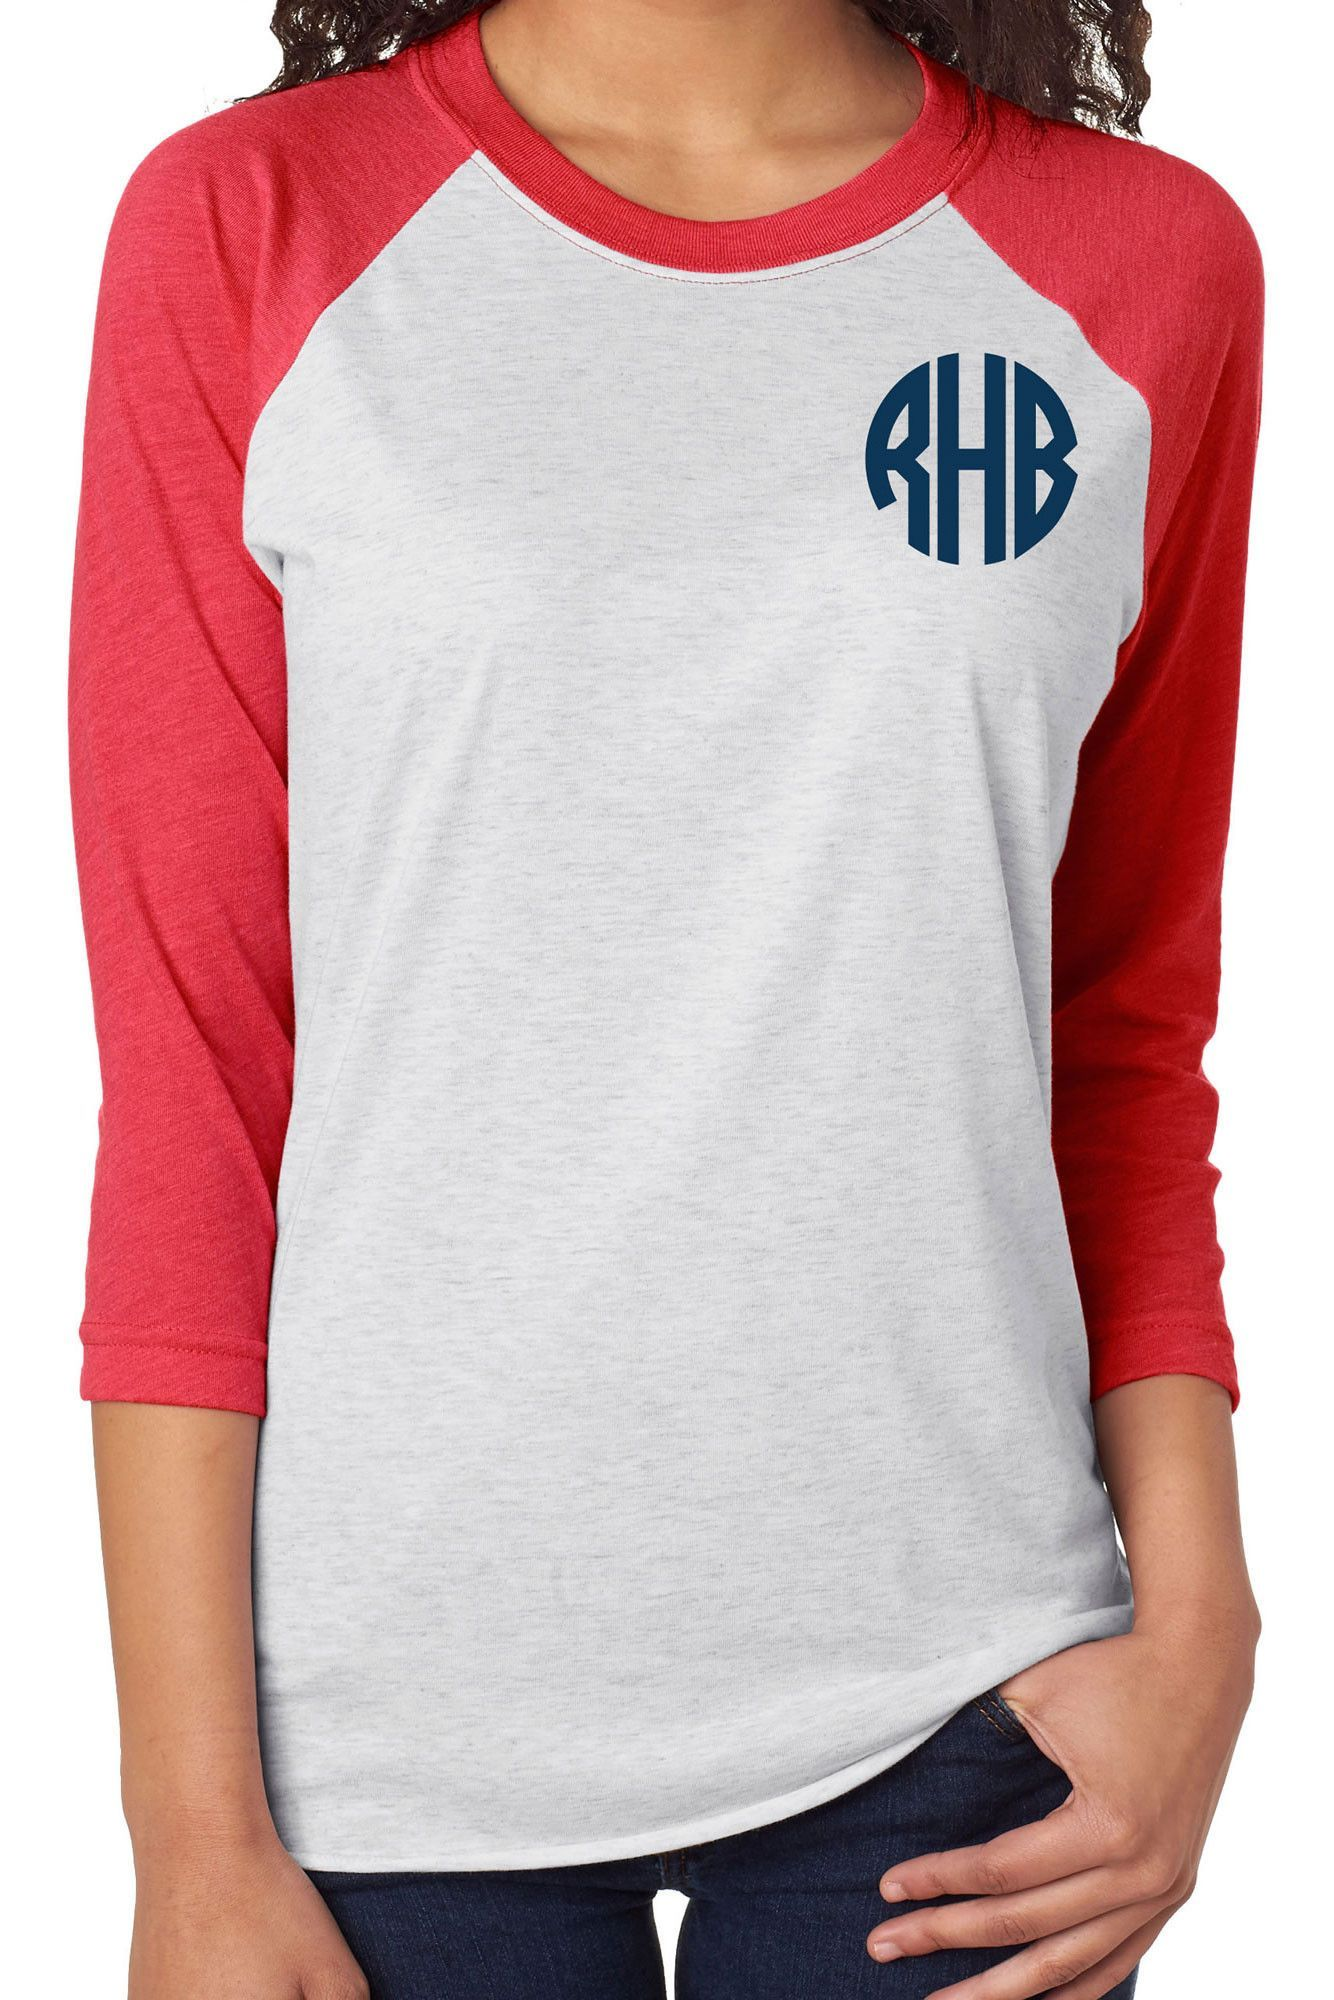 3/4 Sleeve Raglan - Red & White